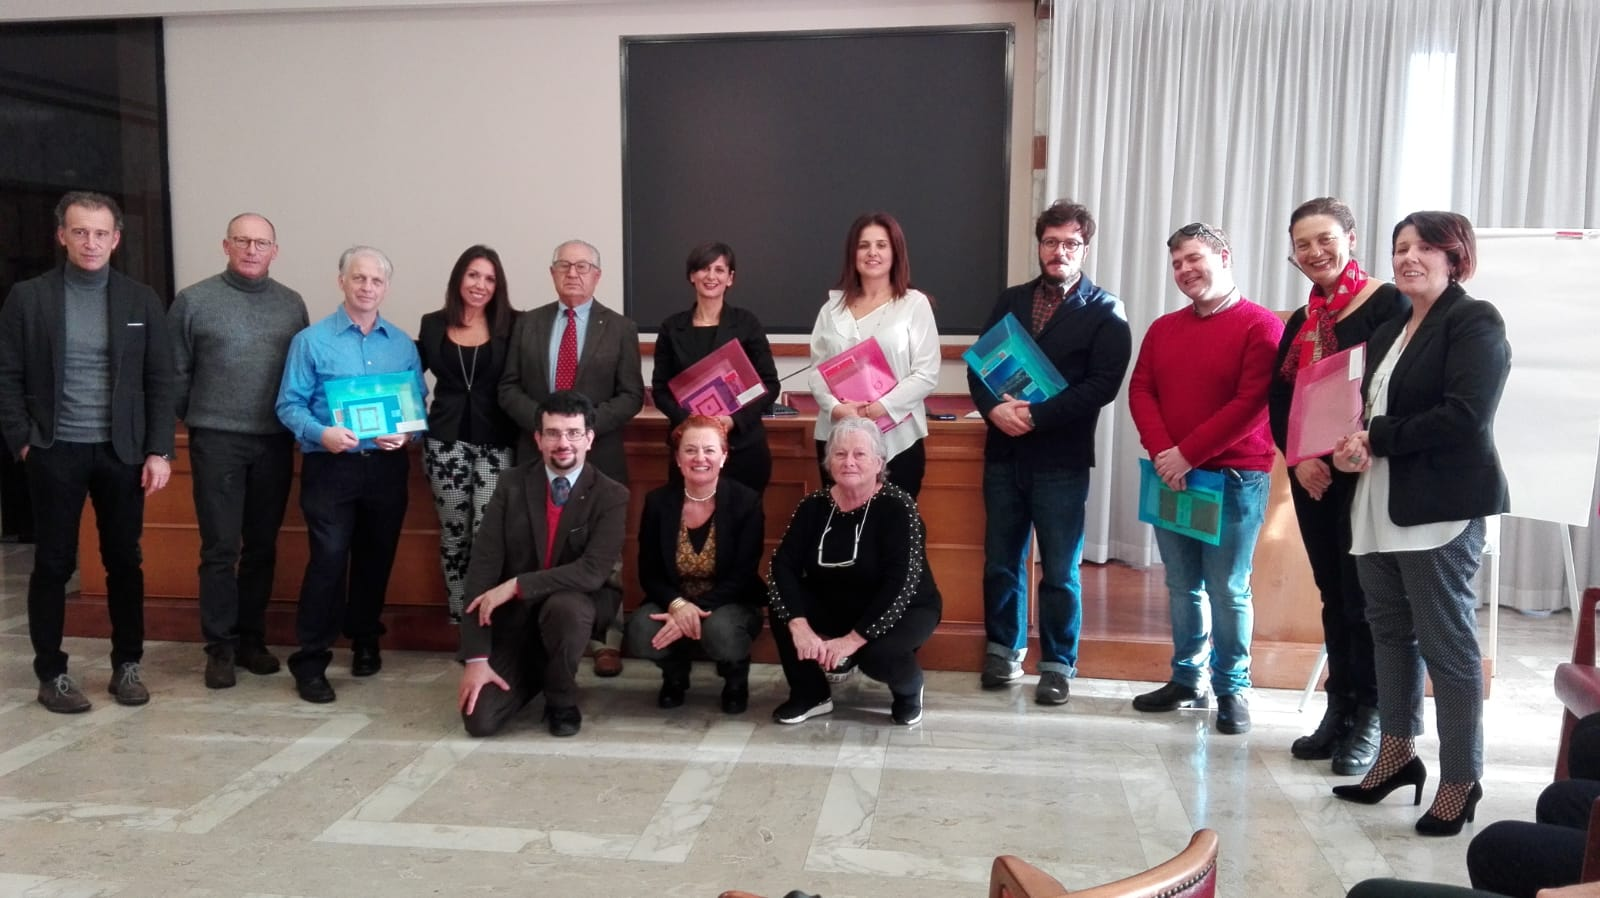 foto premiati hackathon on line sp 24 11 2018